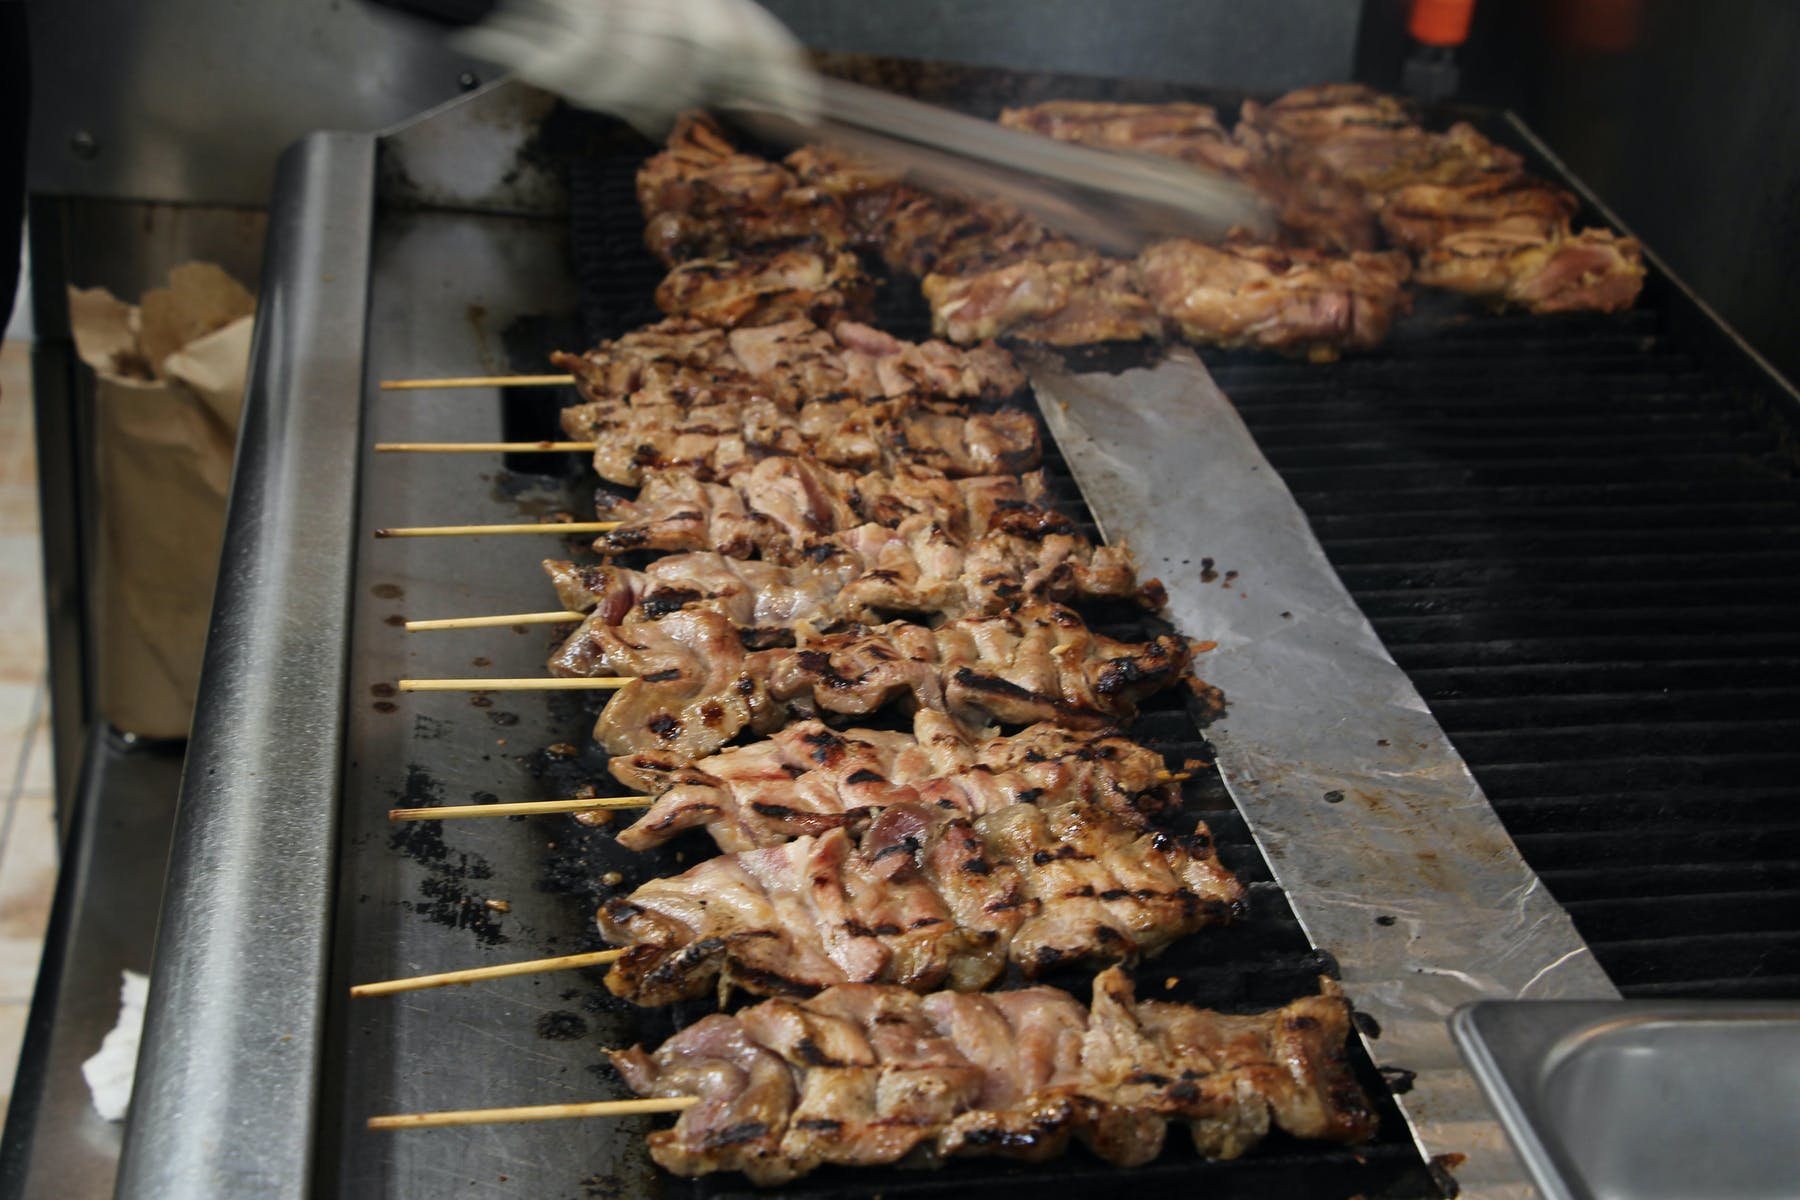 bbq meat skewers cooking on a grill